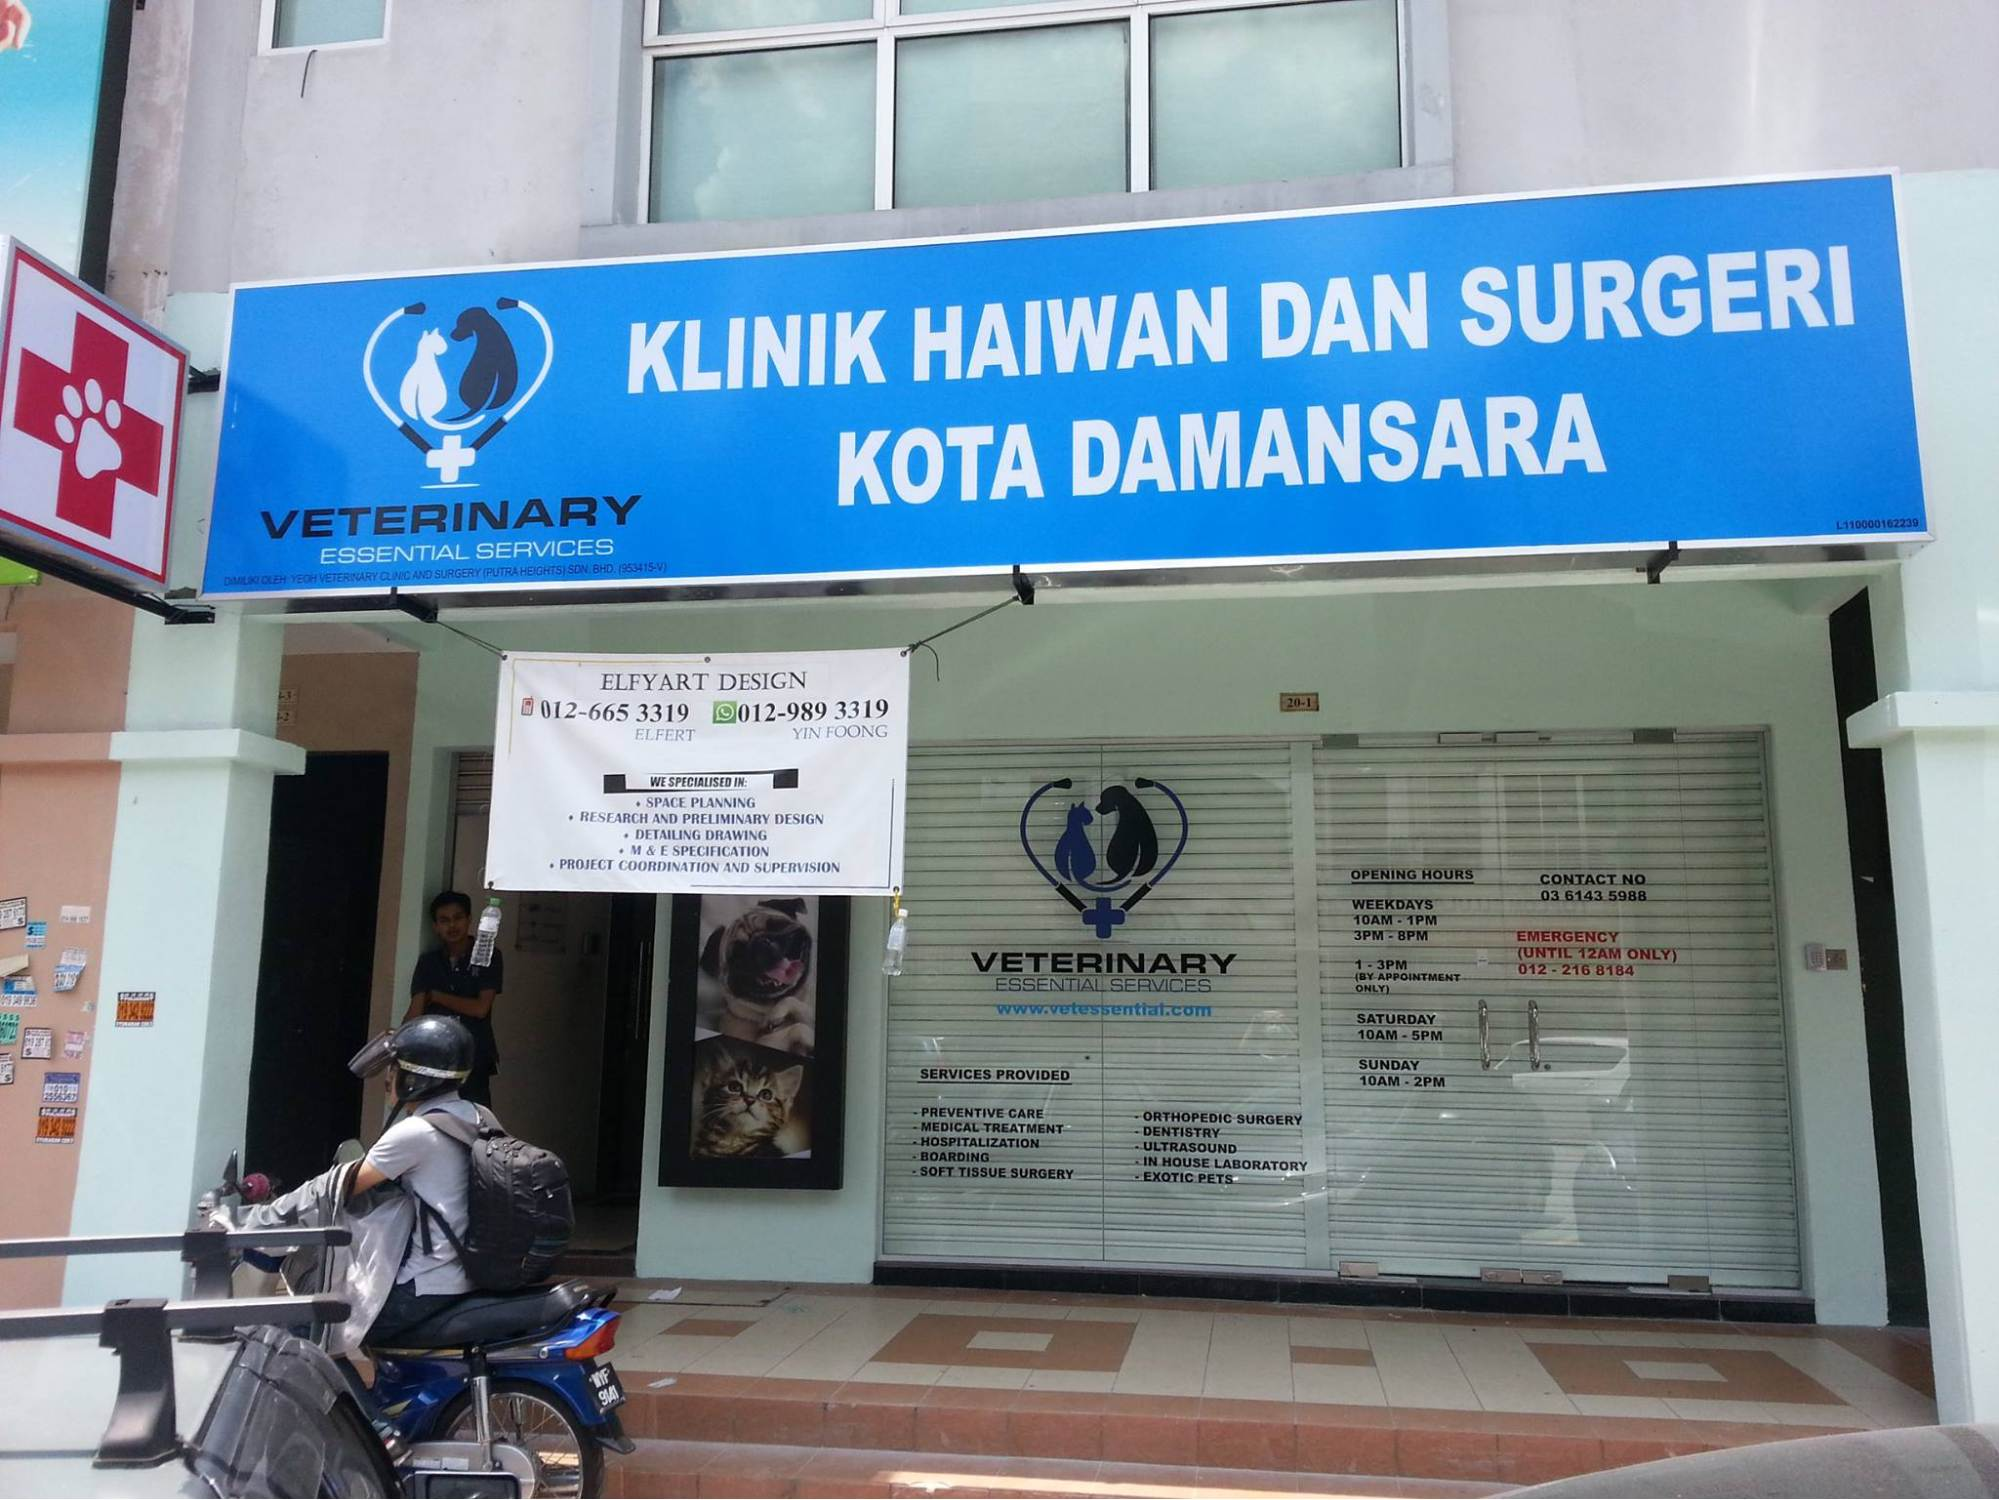 Veterinarians clinics and animal hospitals - Veterinary Essential Services